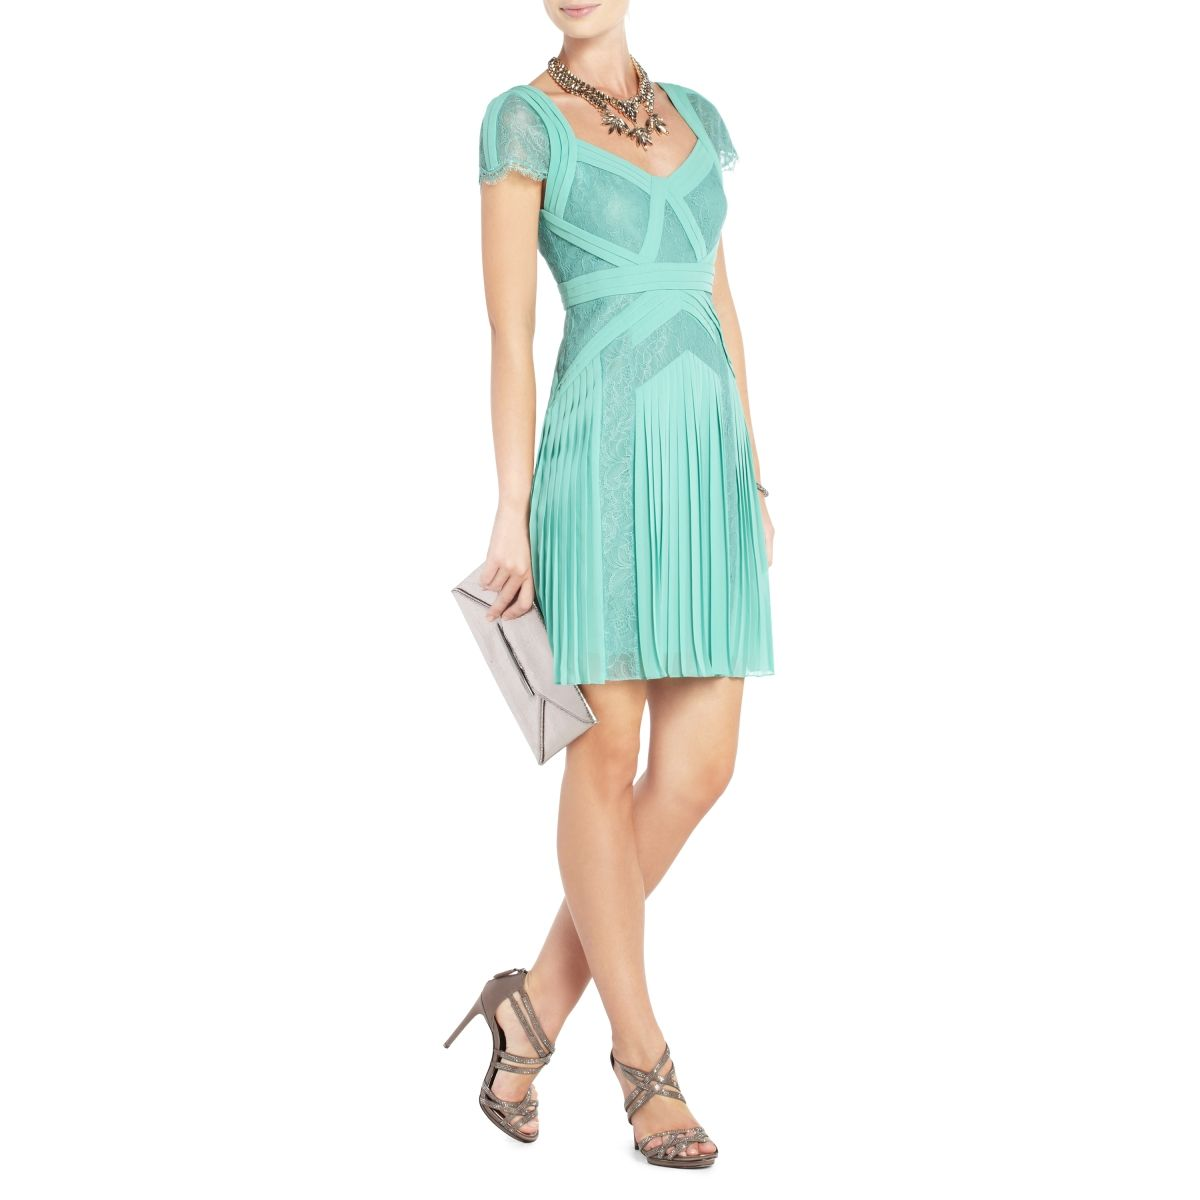 7512606959f BCBGMAXAZRIA - ARIS PLEATED COCKTAIL DRESS- such a beautiful color and  design. Very feminine.